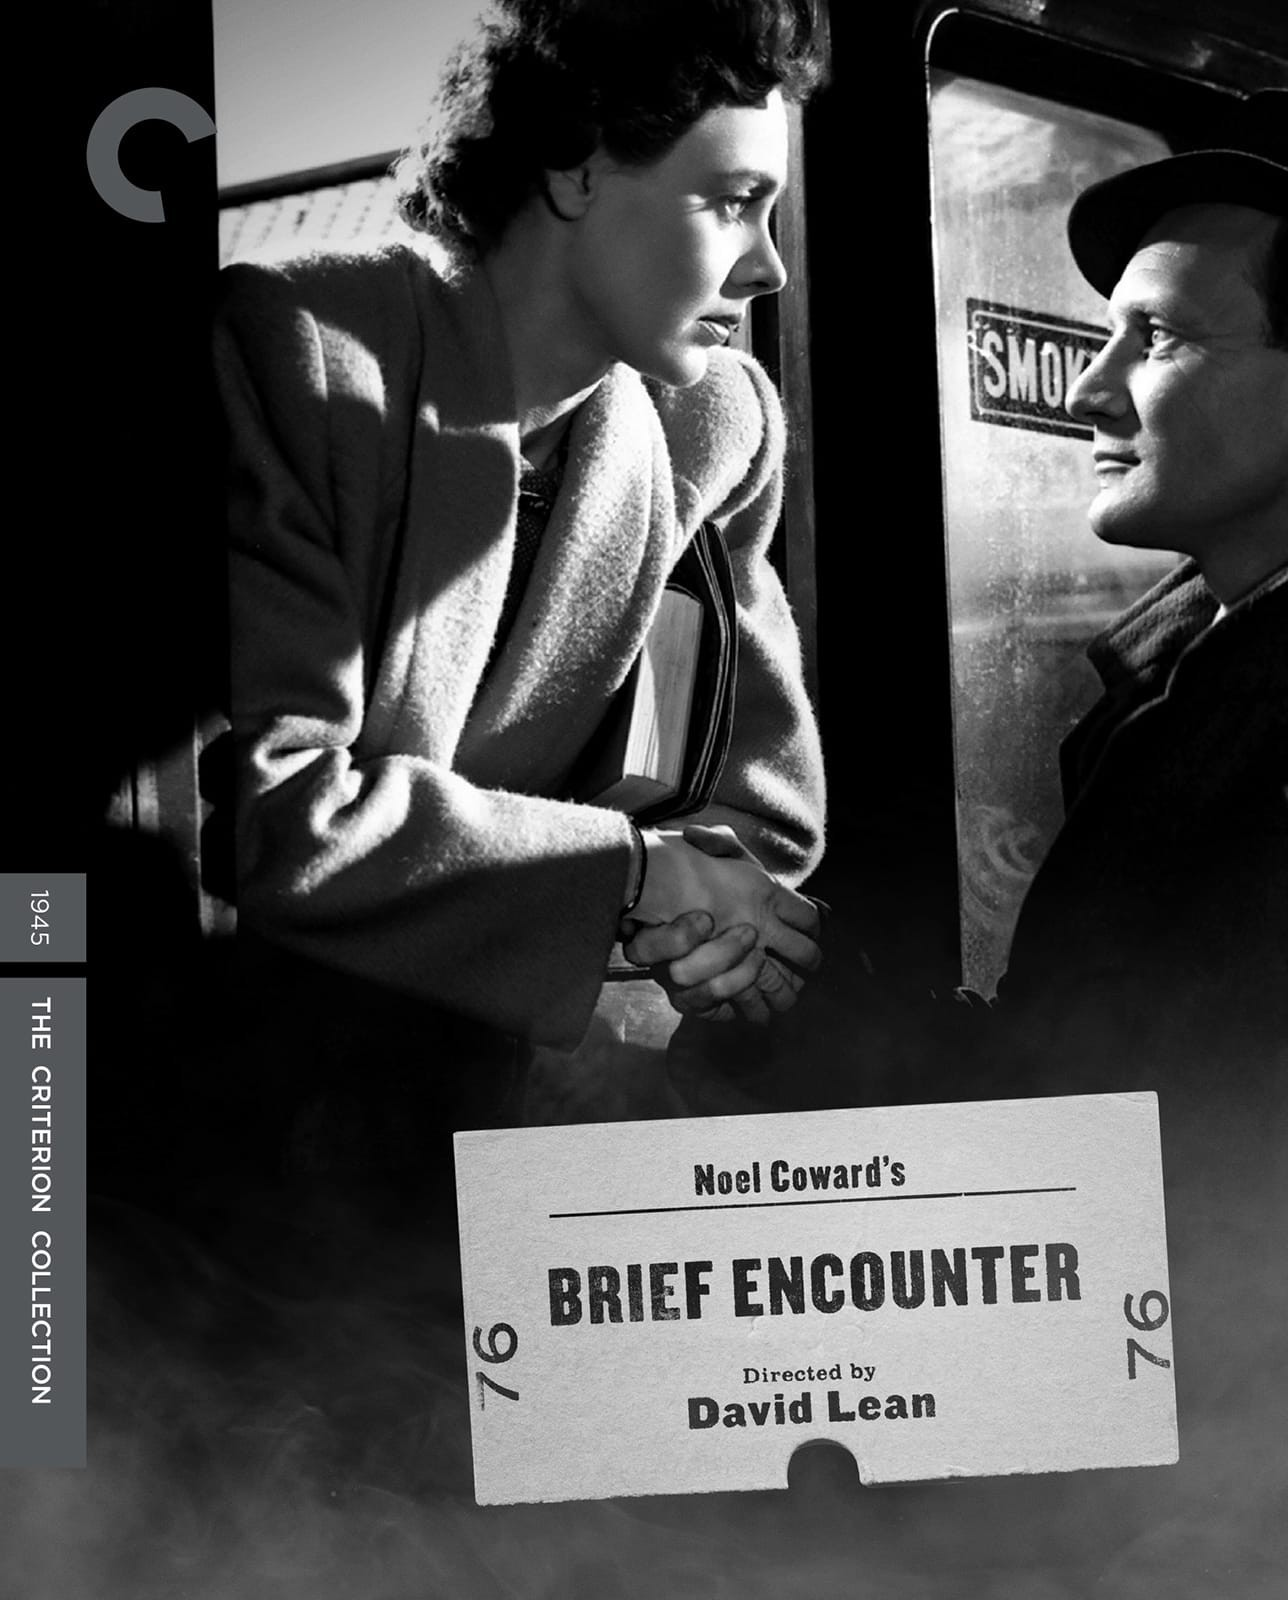 Brief Encounter (1945) The Criterion Collection Blu-ray